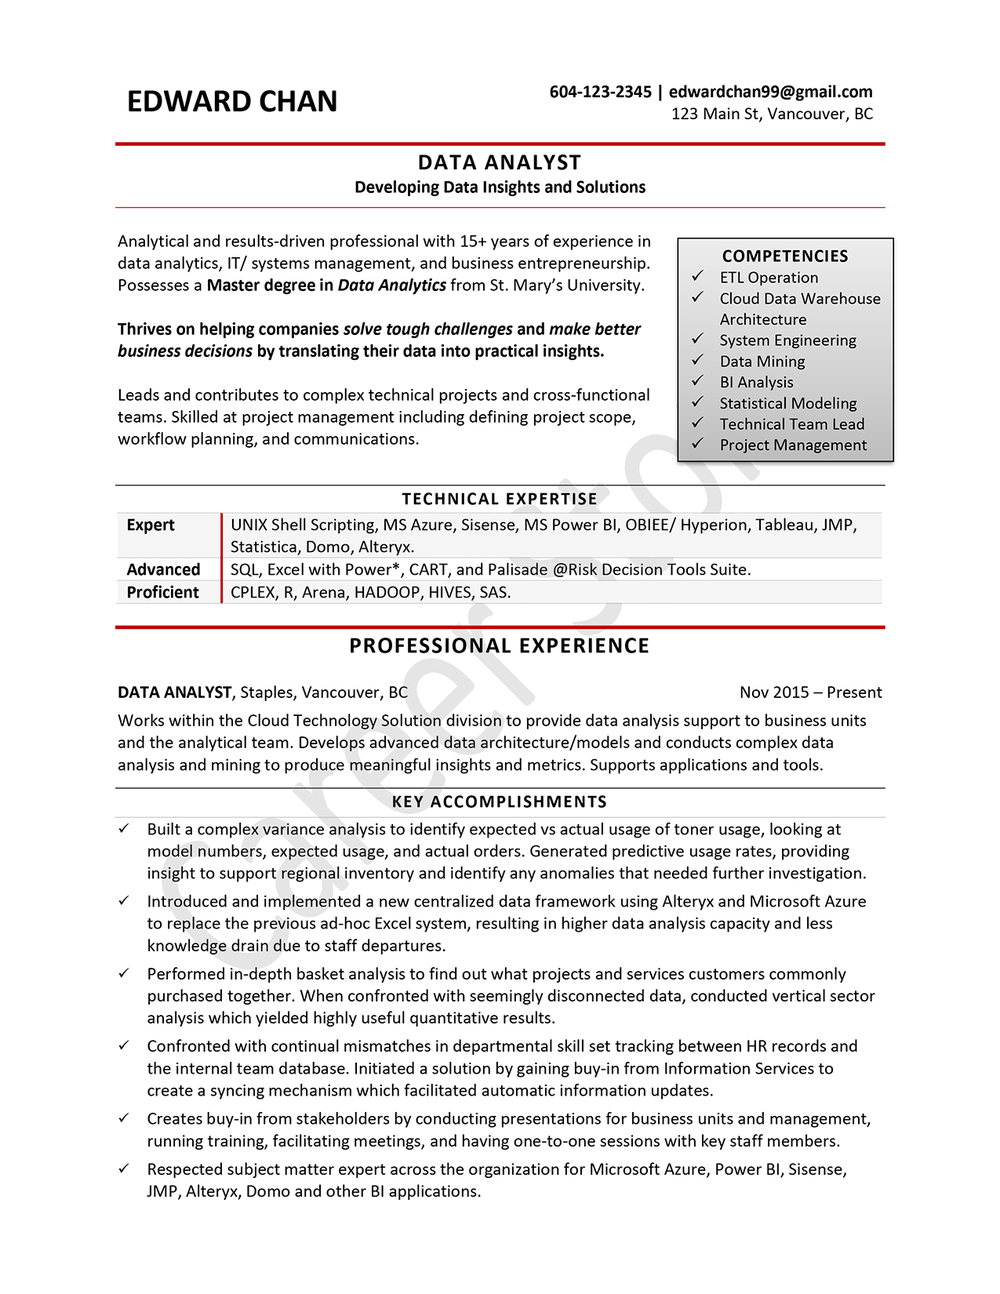 lead architect resume - Hadoop Architect Resume Samples